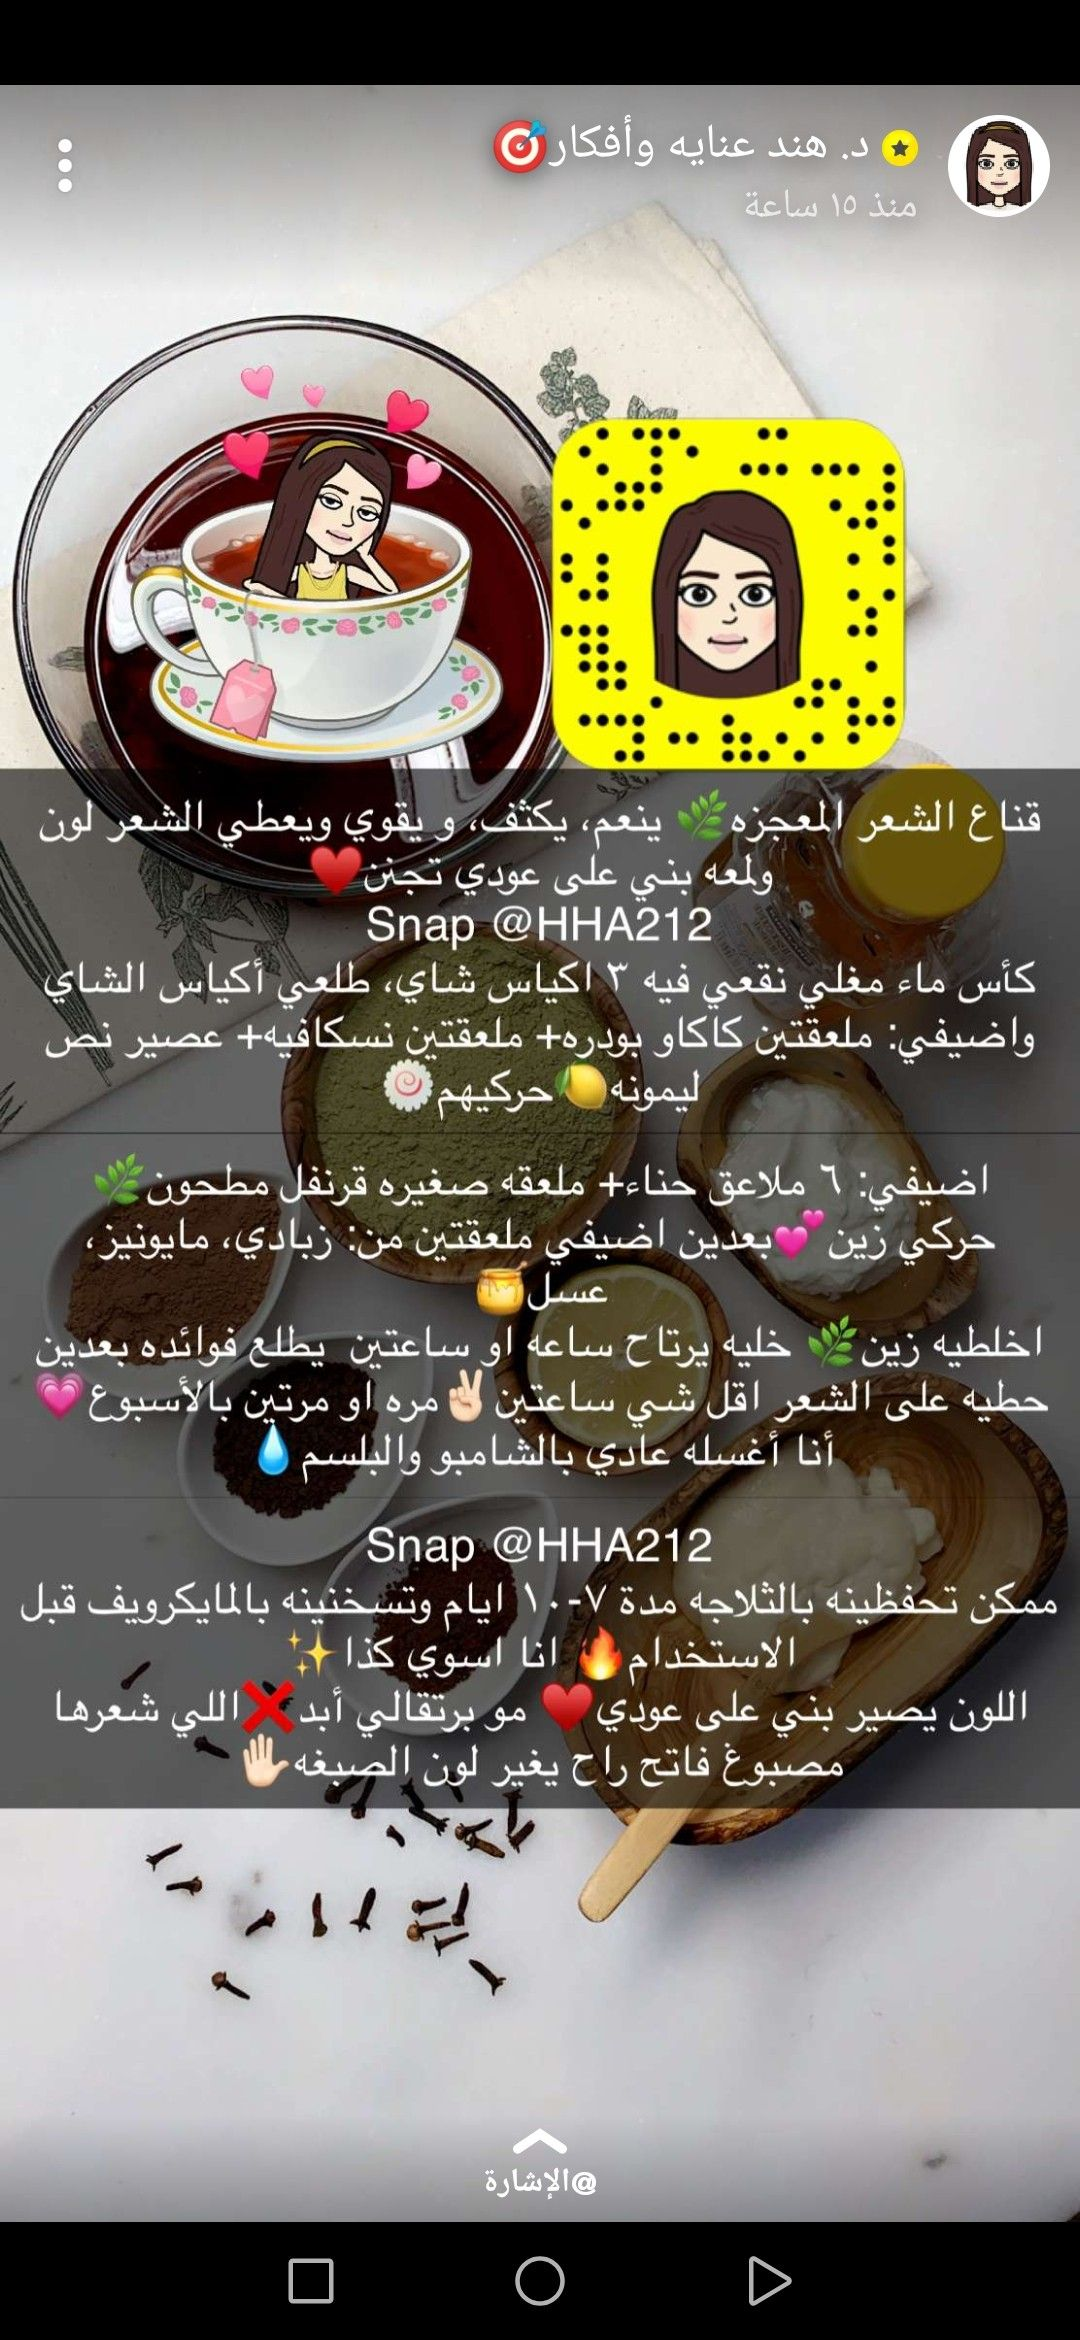 Pin By Sheeren On د هند Hair Care Recipes Body Skin Care Body Skin